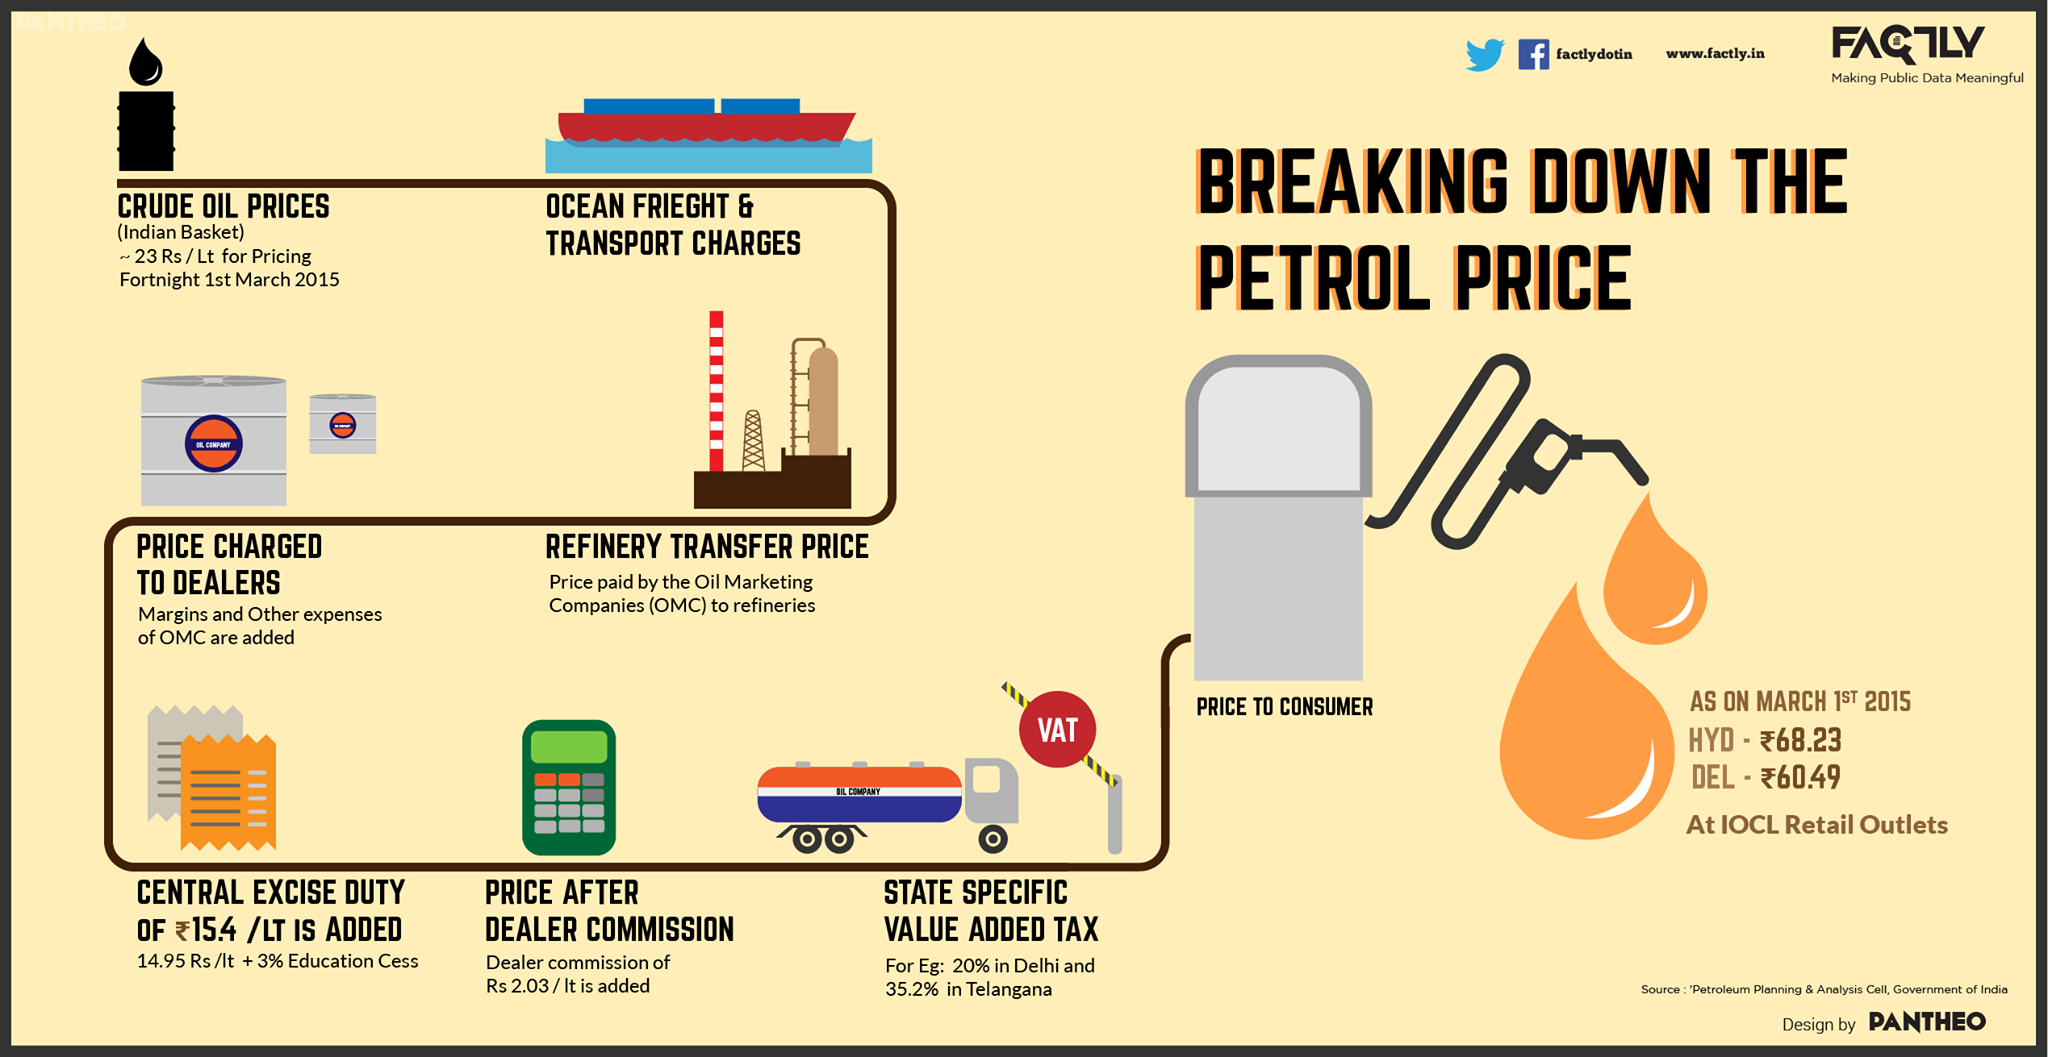 commissioning of crude oil --5 million tons of crude oil imported since commissioning of byco's single point mooring (spm) in 2012--byco's spm has continuously operated safely since its launch in 2012, including throu.